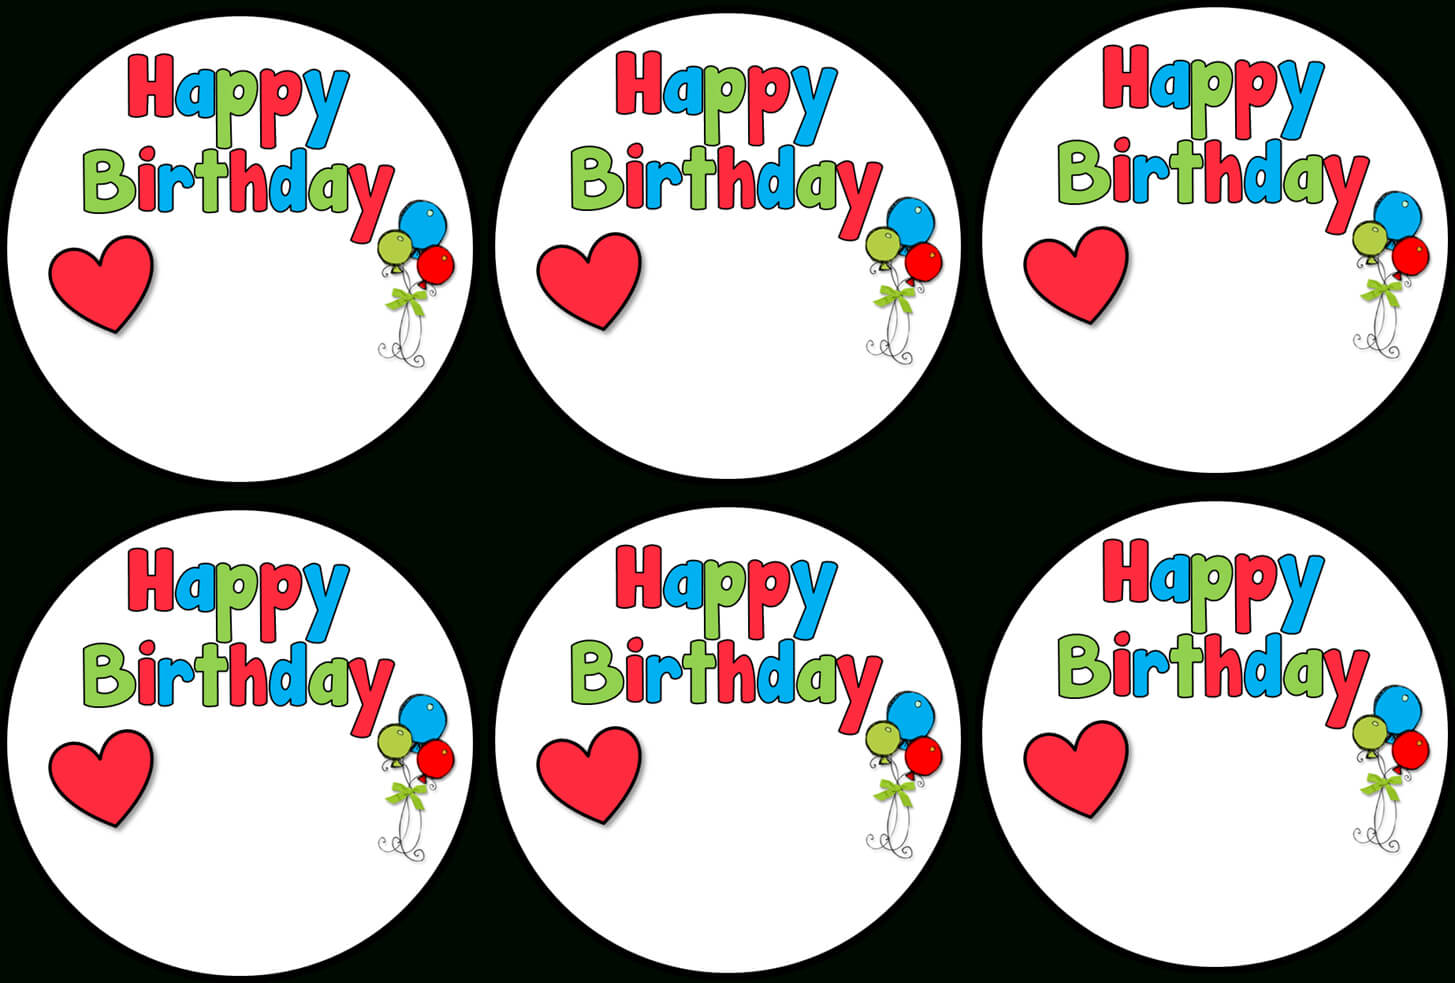 Birthday Labels Template Free ] - And Of Course Some Thank Throughout Birthday Labels Template Free